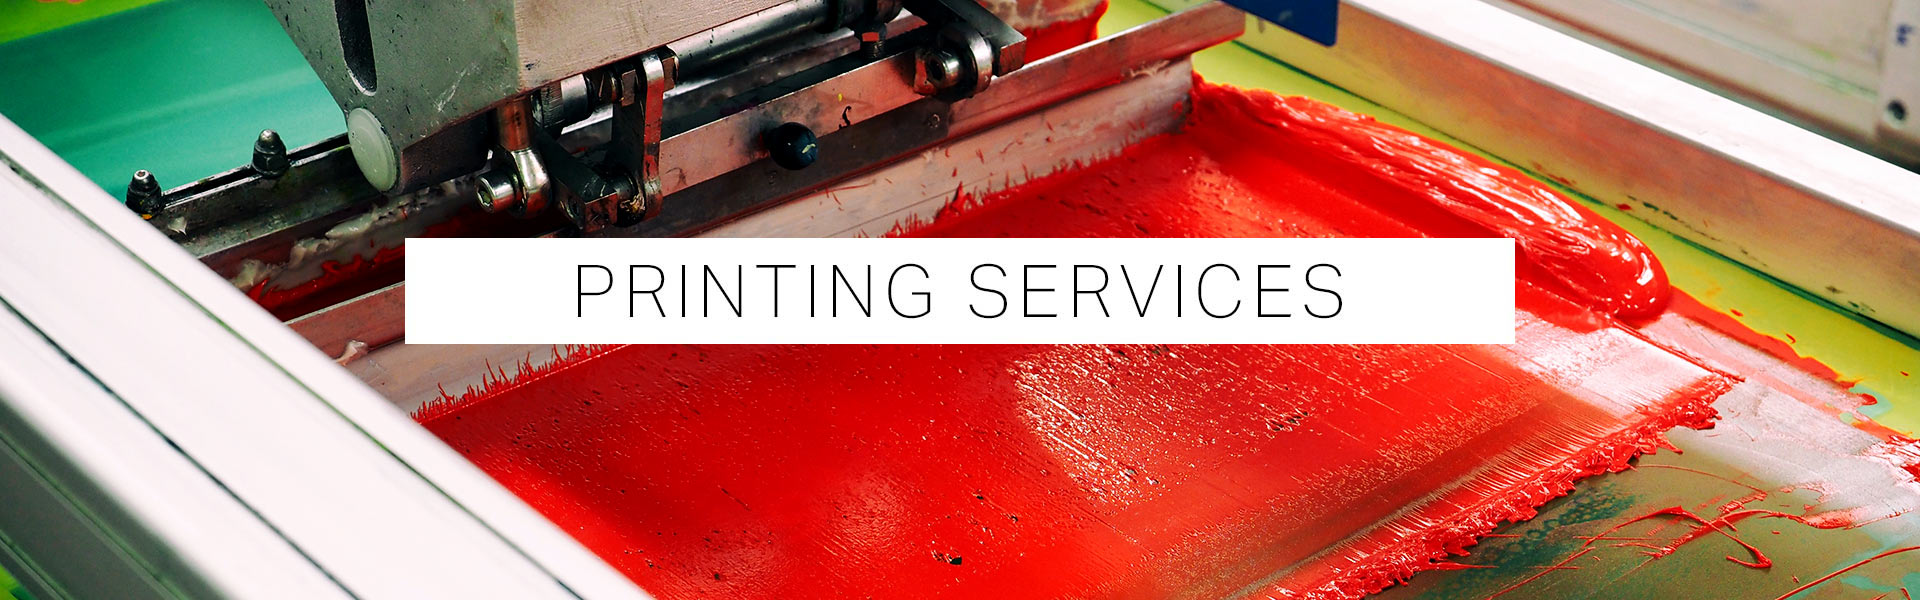 Digital Printing Services in Milwaukee, WI | Business Cards